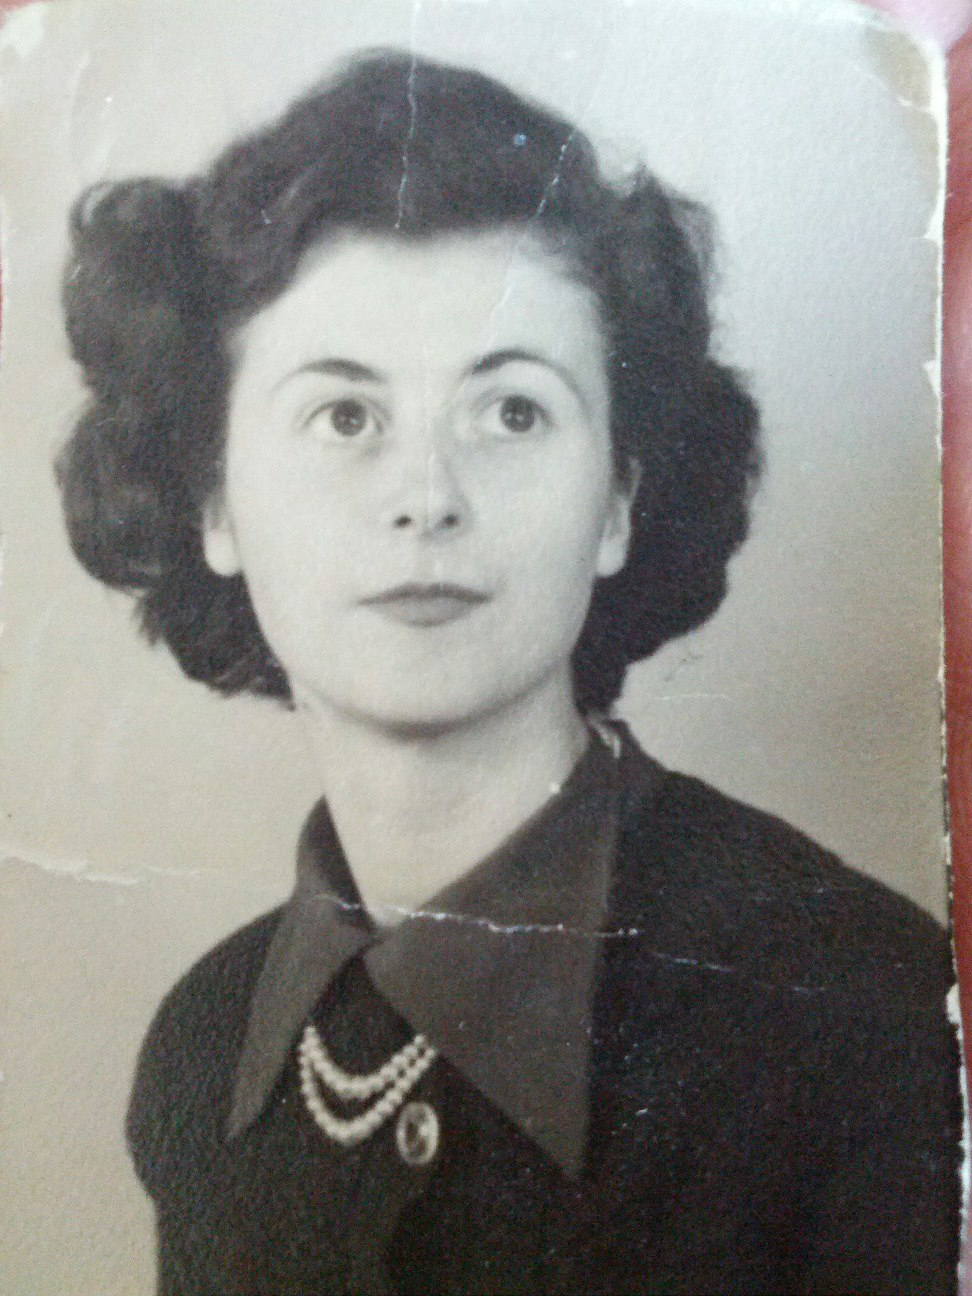 My grandmother, Joan Bagg. Lost to us in April 2013 but never forgotten!